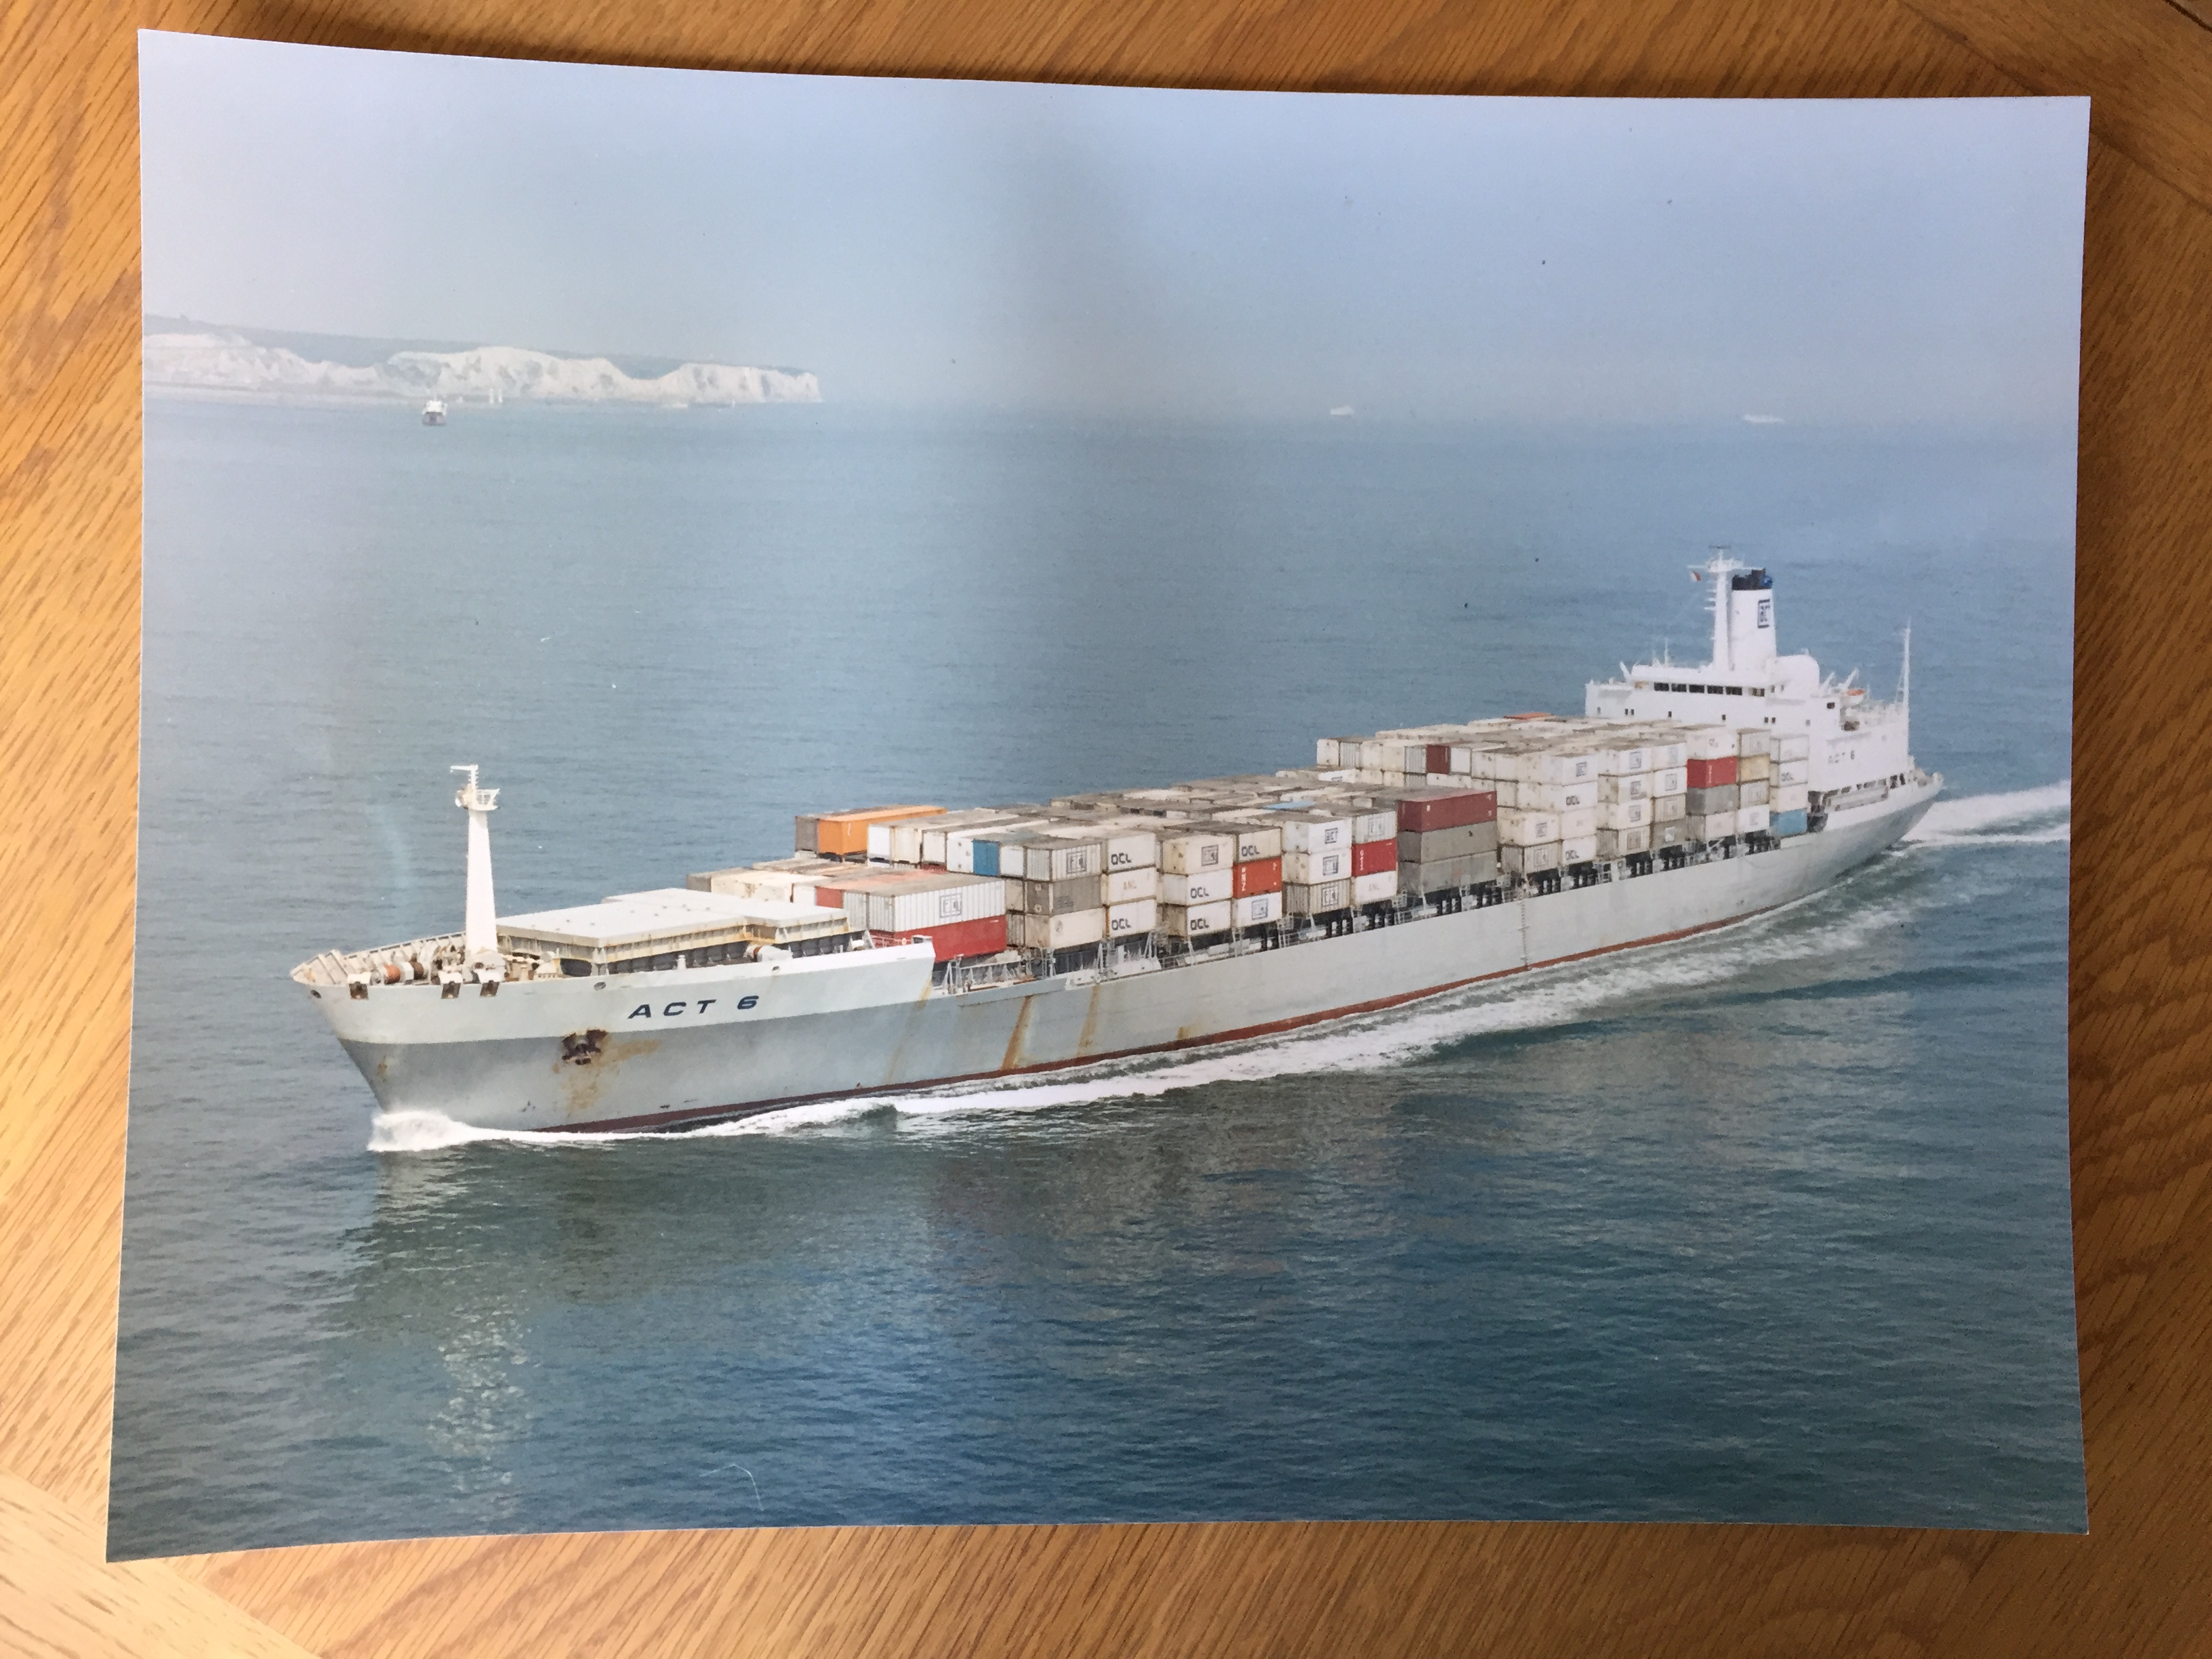 LARGE SIZE COLOUR PHOTOGRAPH OF THE CONTAINER VESSEL ACT 6